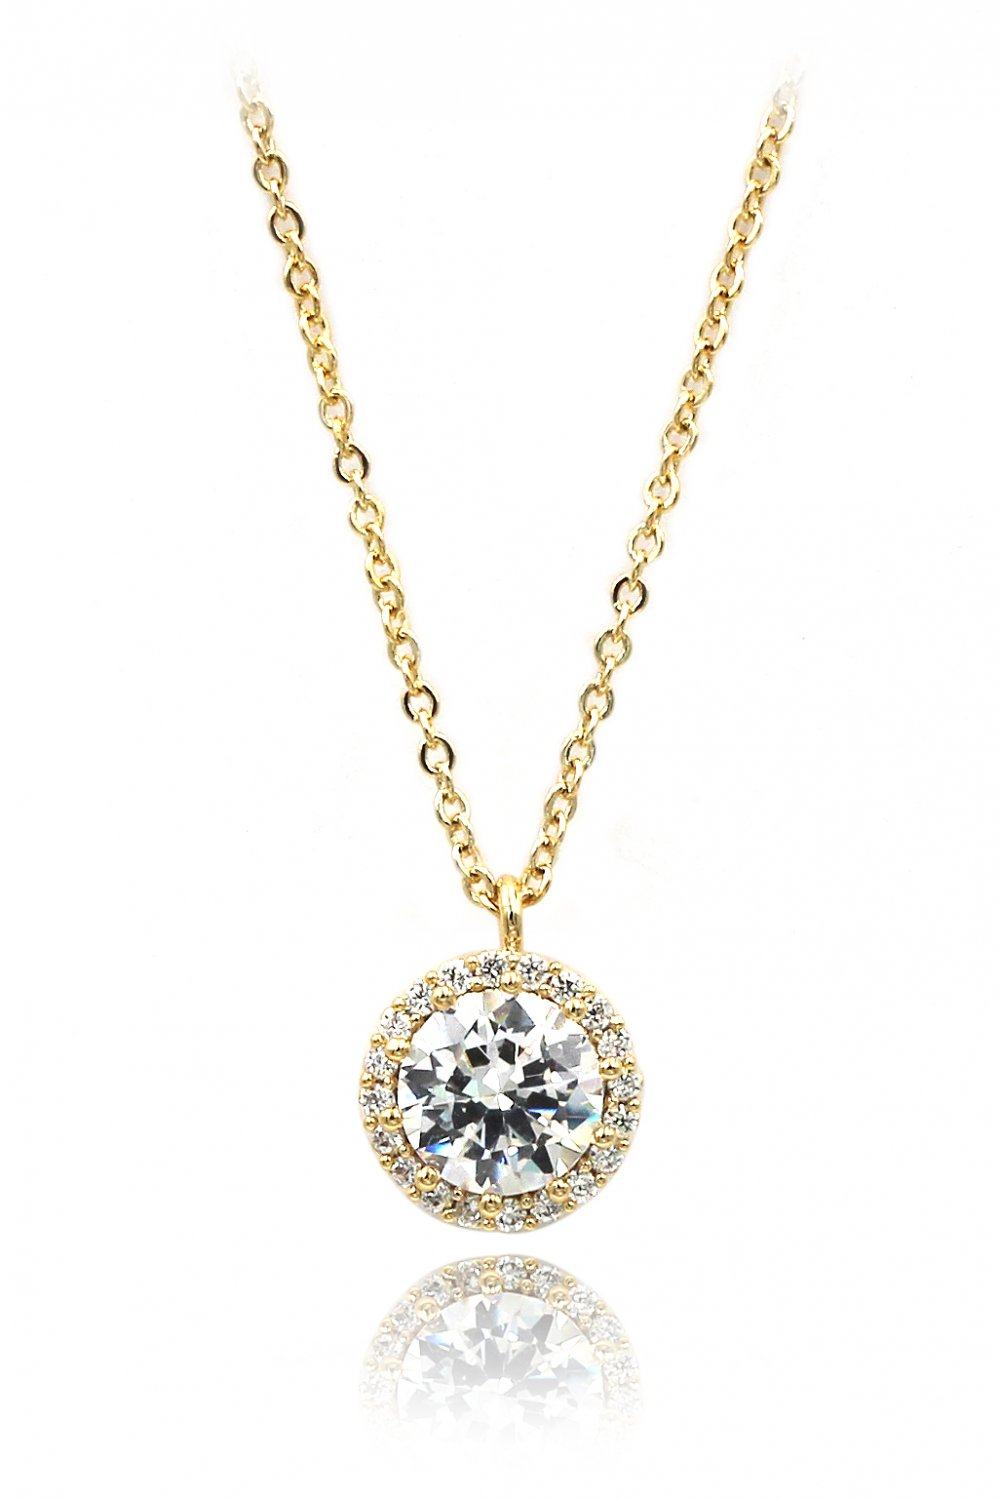 Flashing crystal gold necklace